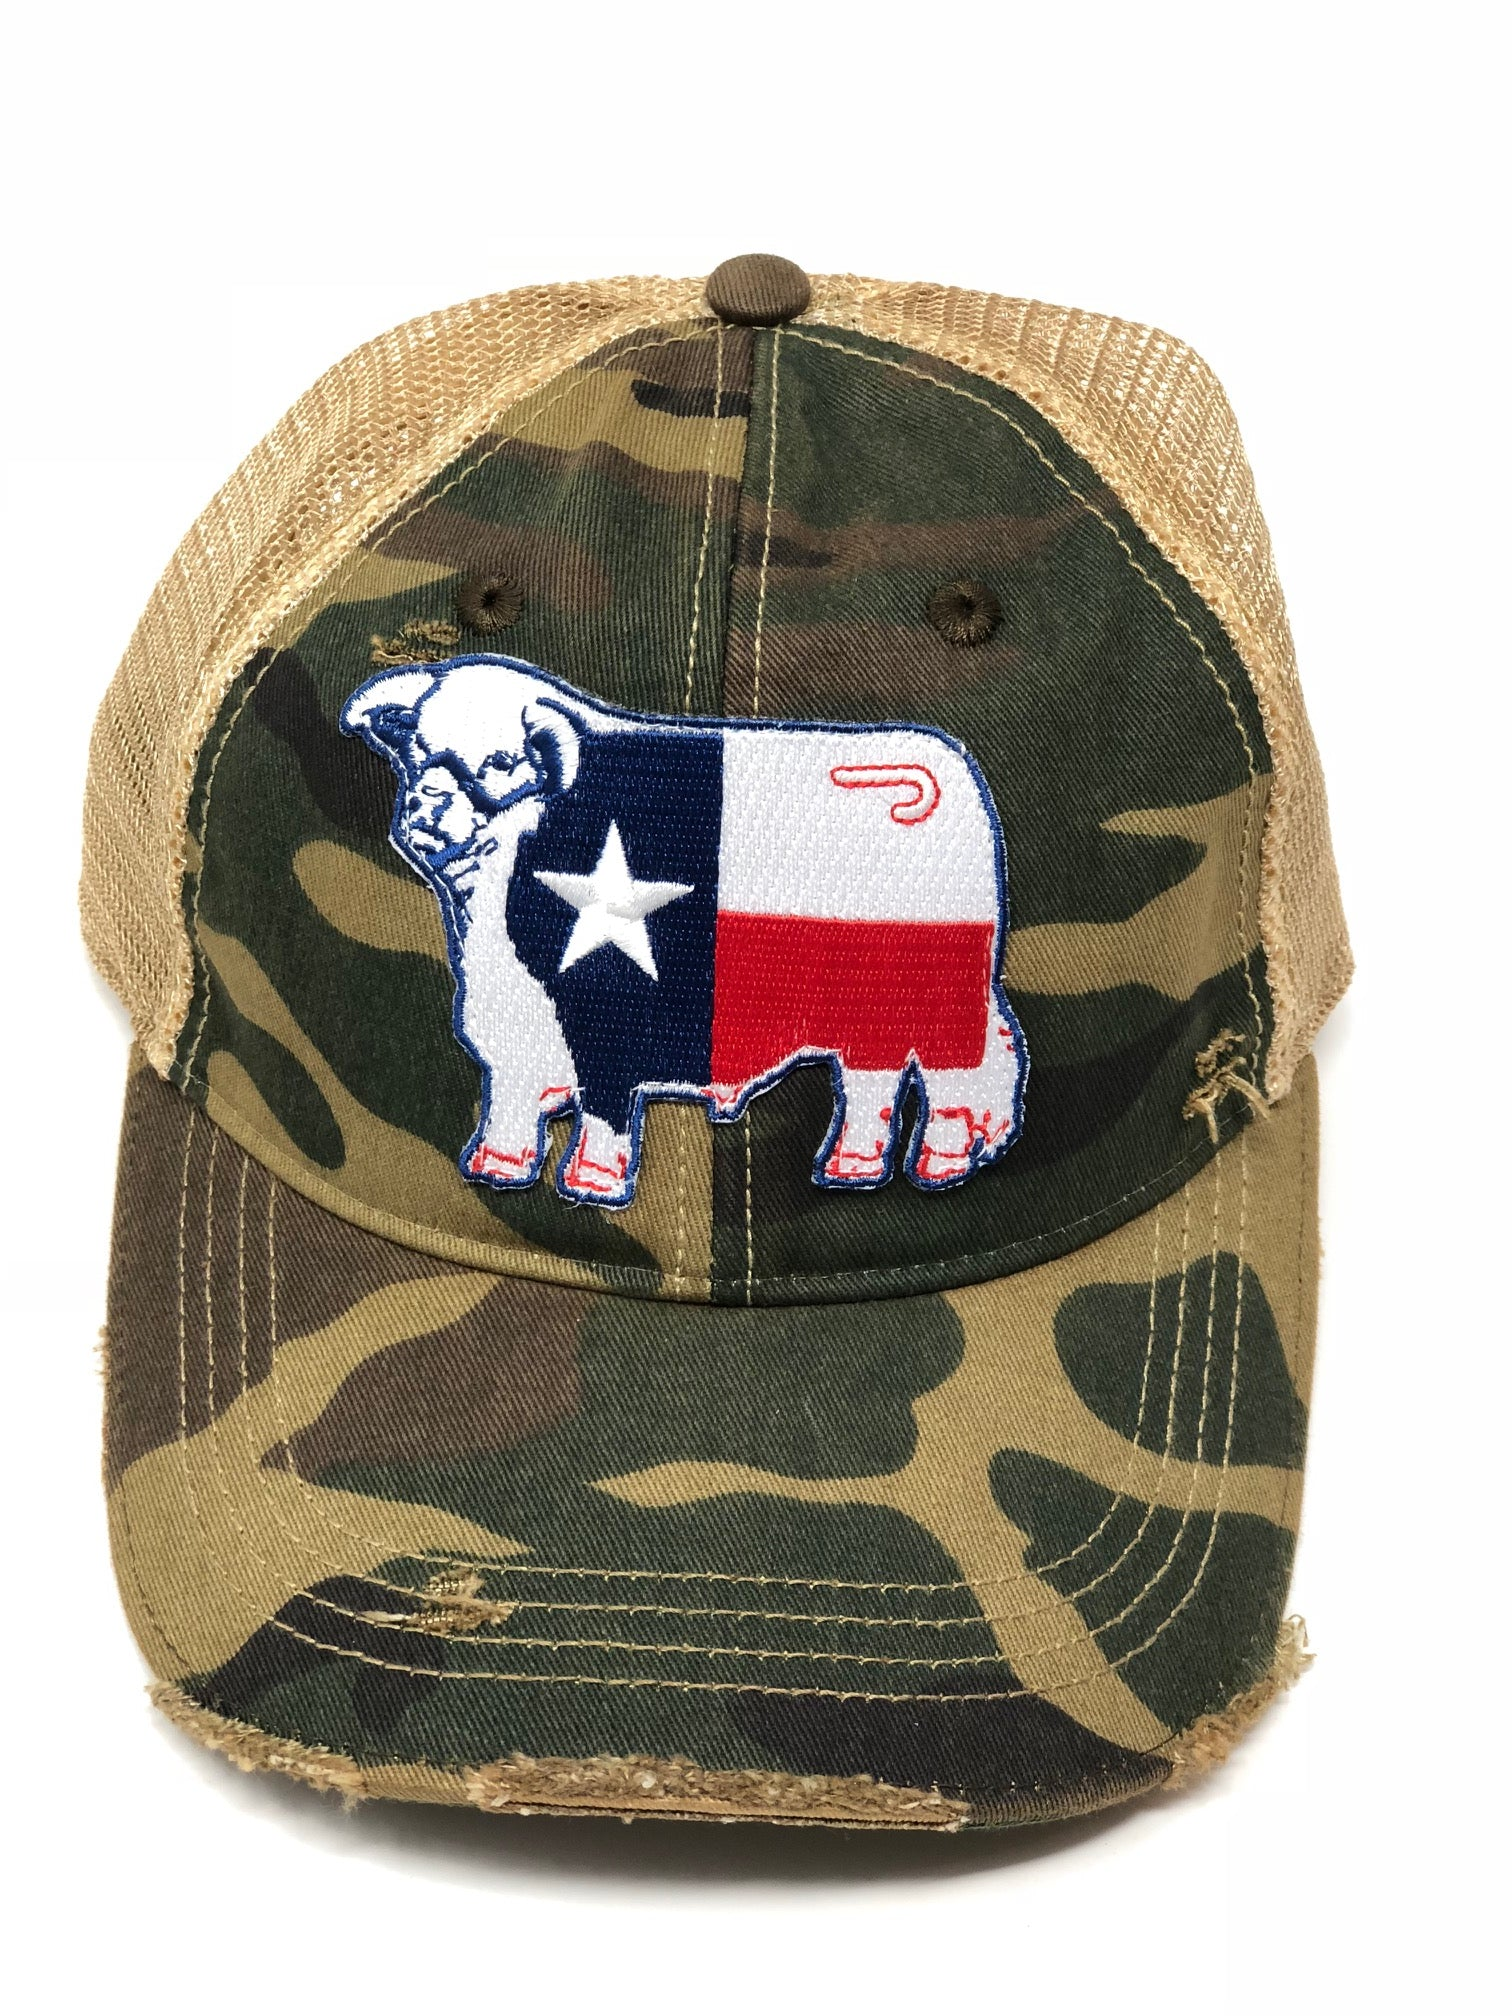 Lazy J Camo & Tan Unstructured Texas Flag Patch Cap